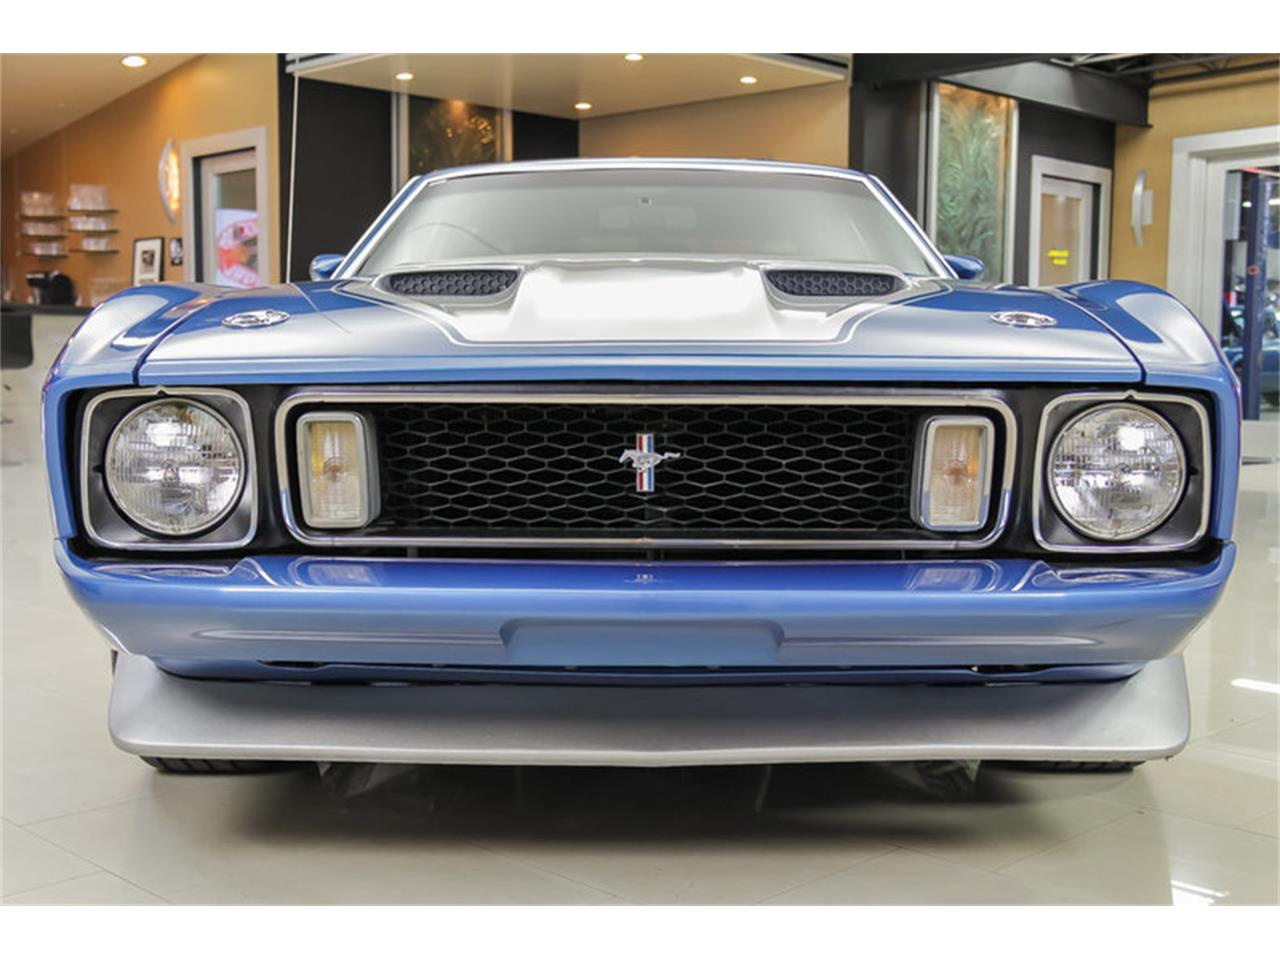 Large Picture of Classic '73 Mustang Mach 1 Q Code located in Michigan - JDX1